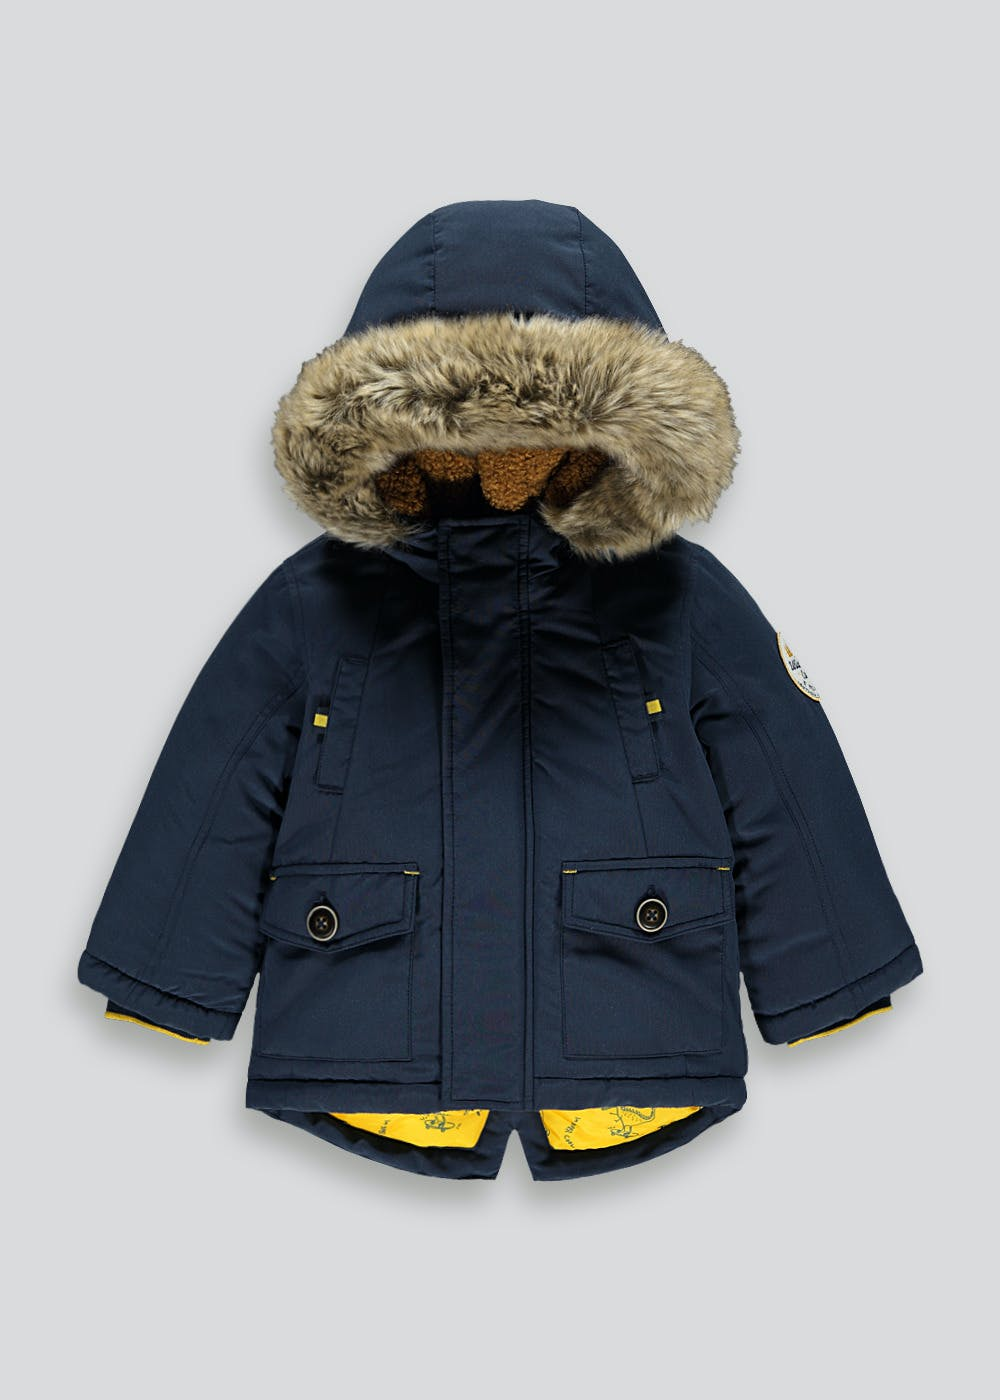 factory authentic factory price how to purchase Boys Shower Resistant Parka Coat (9mths-6yrs)